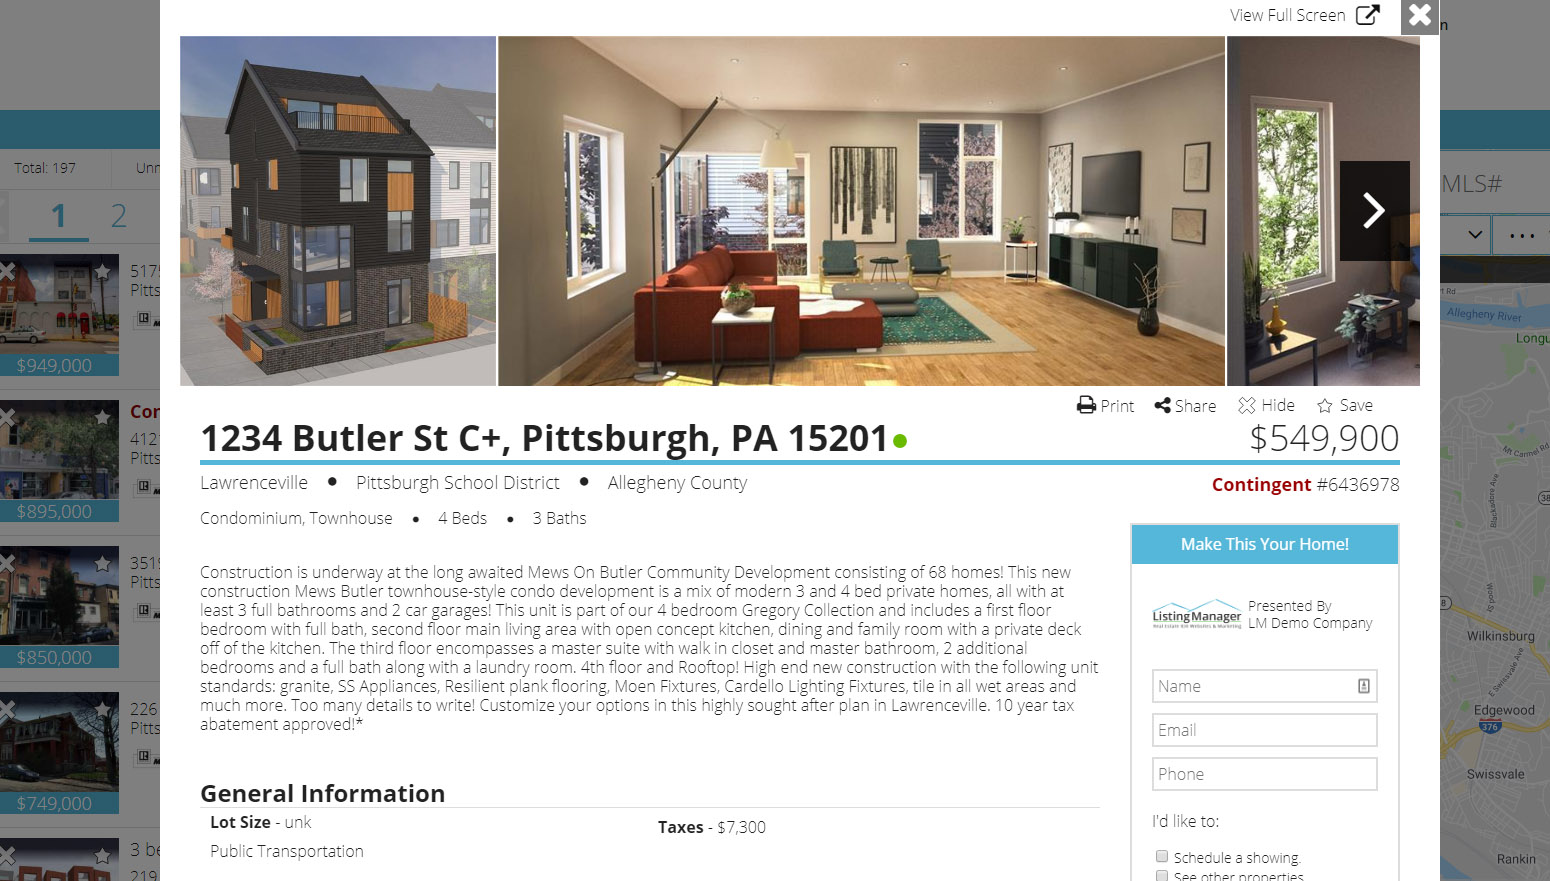 Listing Manager property details page